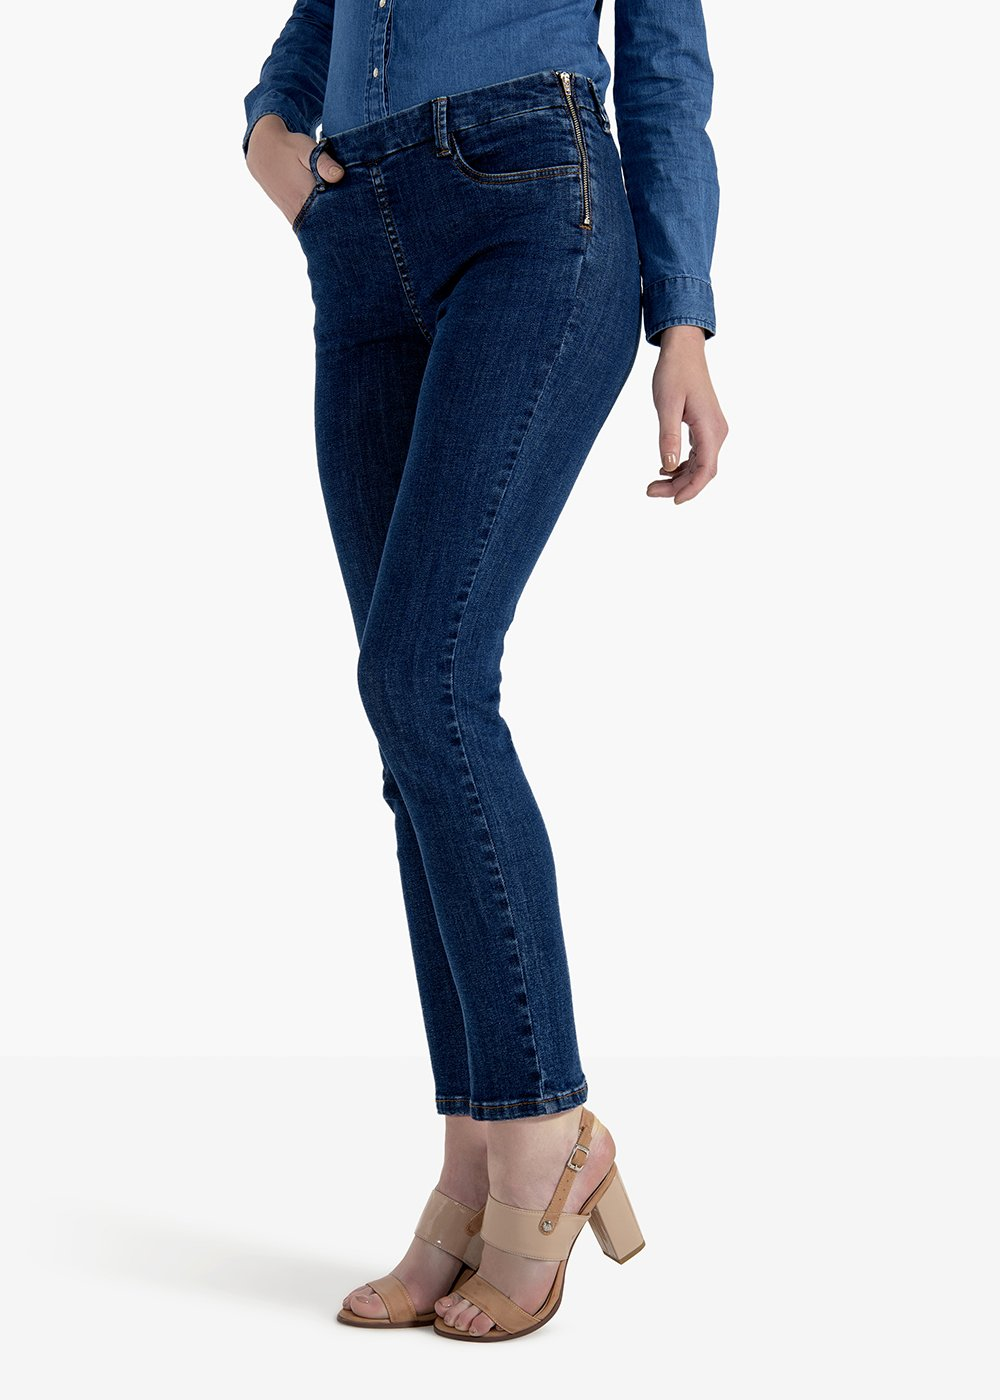 Pantaloni Scarlett in denim modello skinny - Medium Blue - Donna